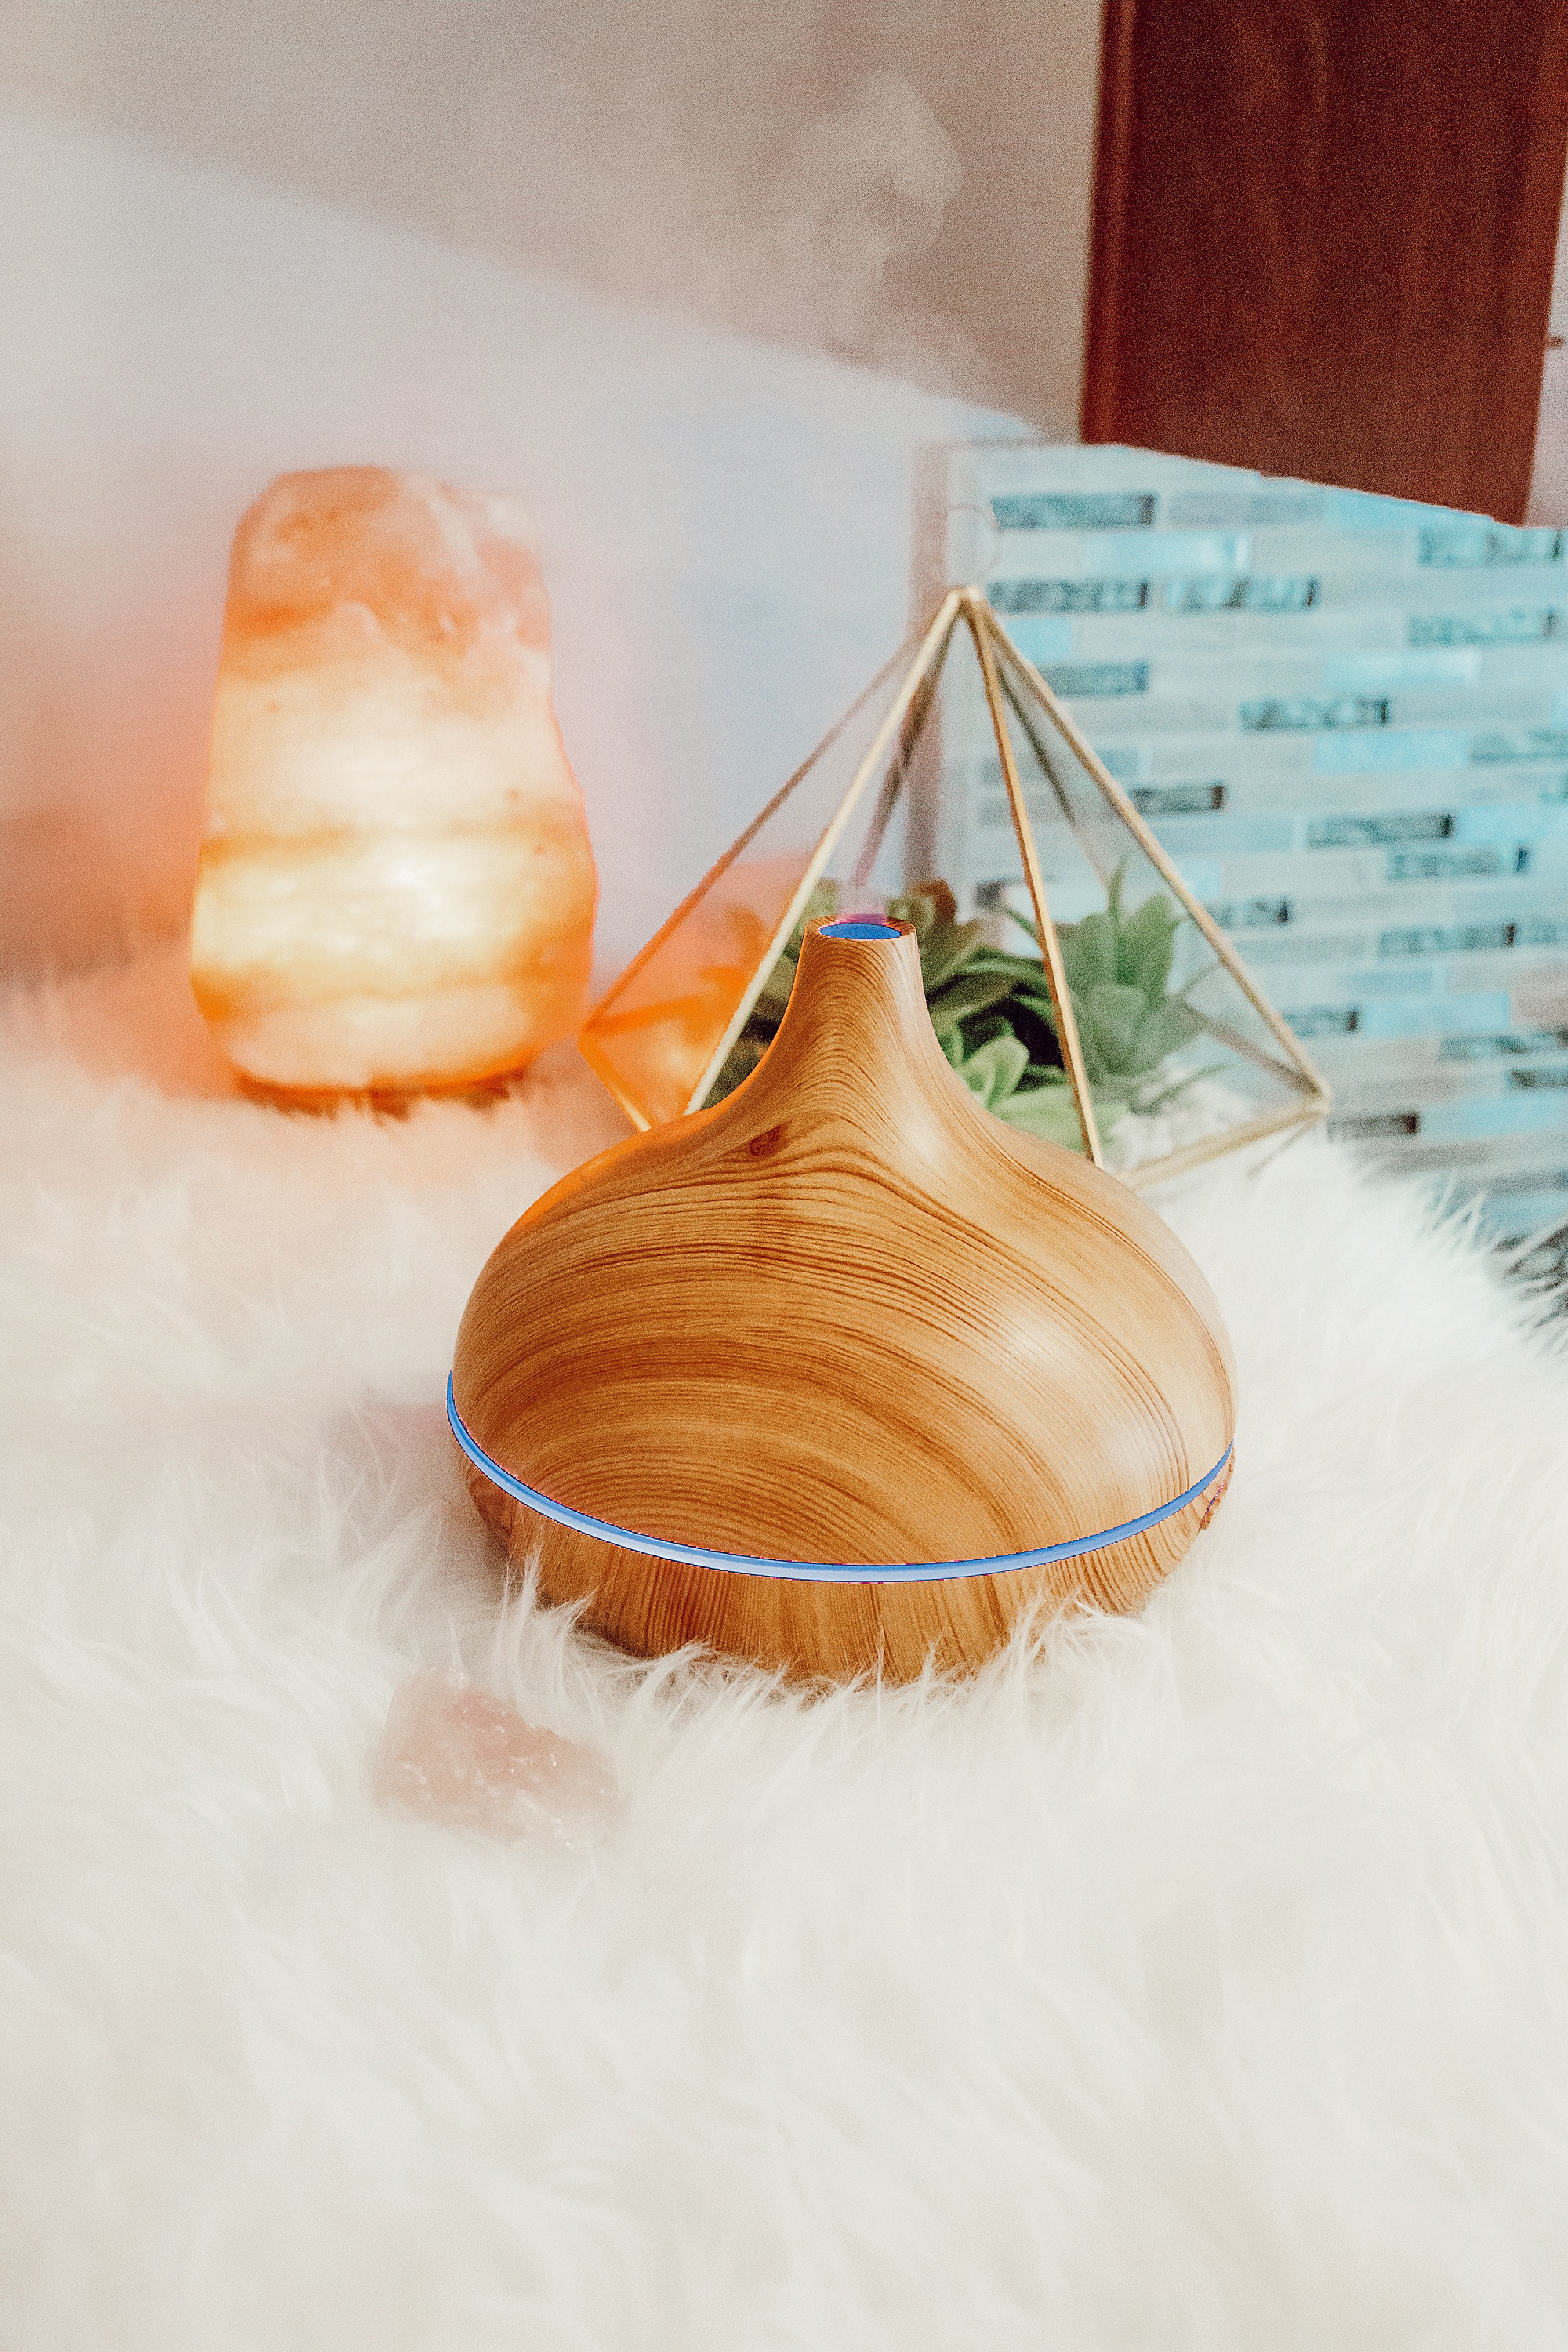 Health and Wellness Holiday Gift Guide | Amazon health and fitness products to gift. Amazon Essential Oil Diffuser with Art Naturals Essential Oils.